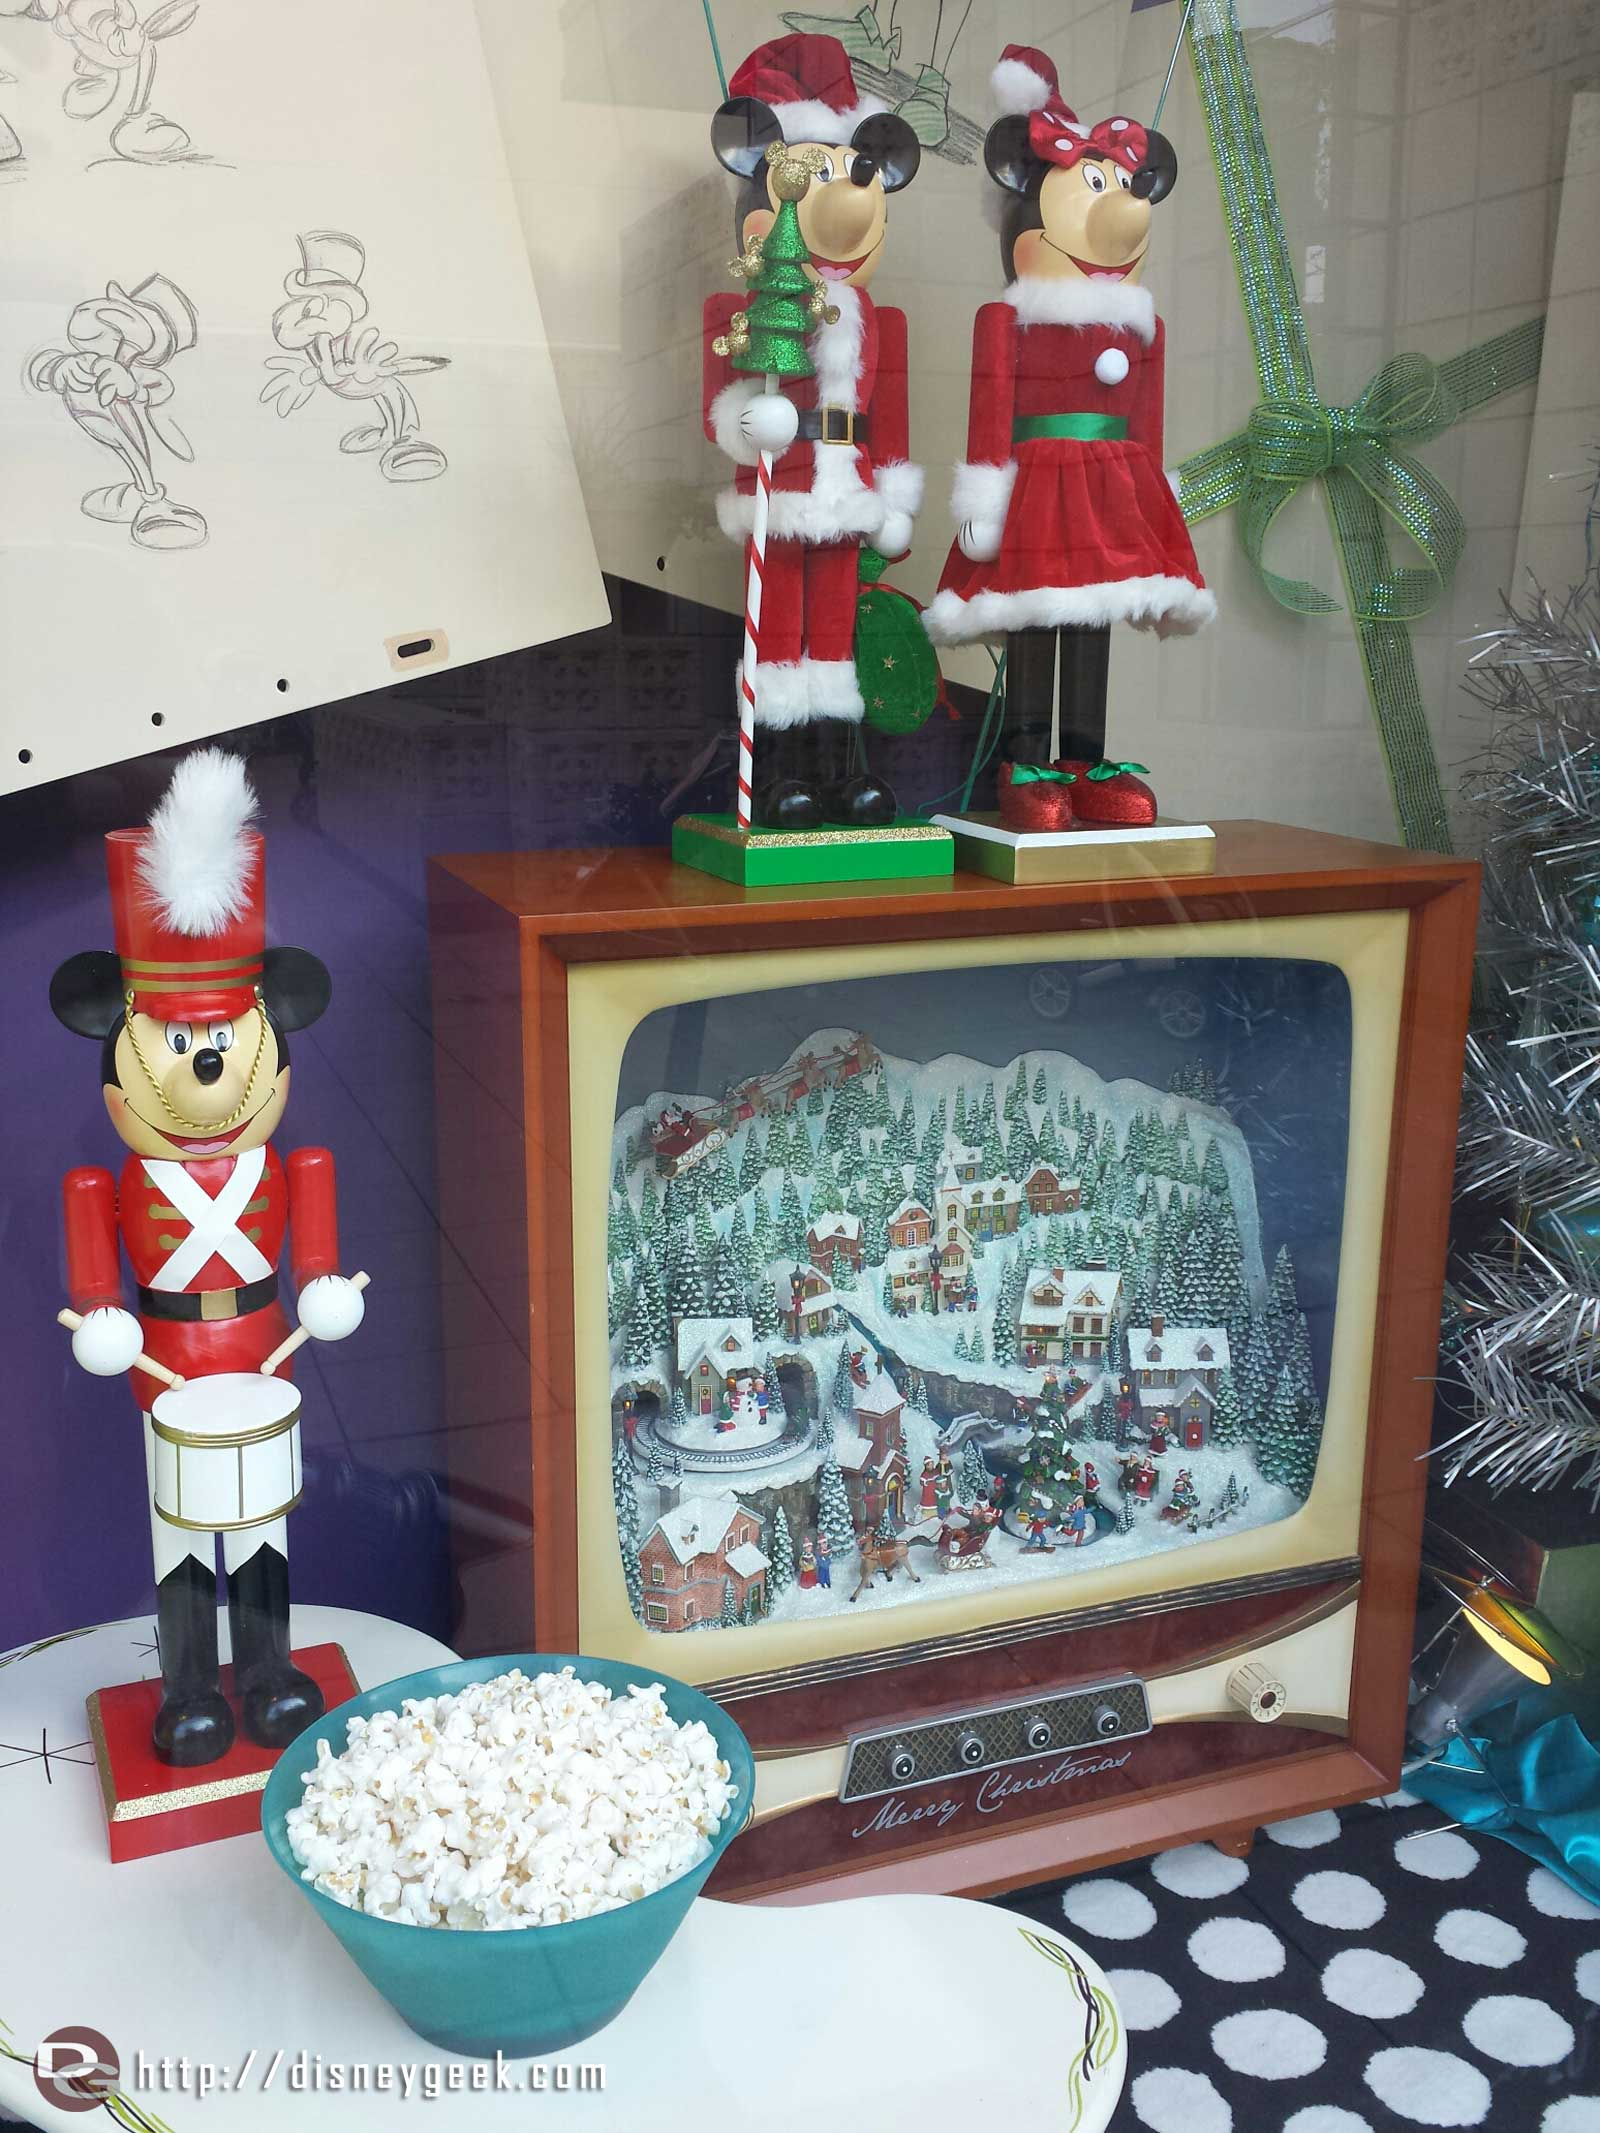 The Off the Page window featuring nutcrackers and a Christmas scene on the TV